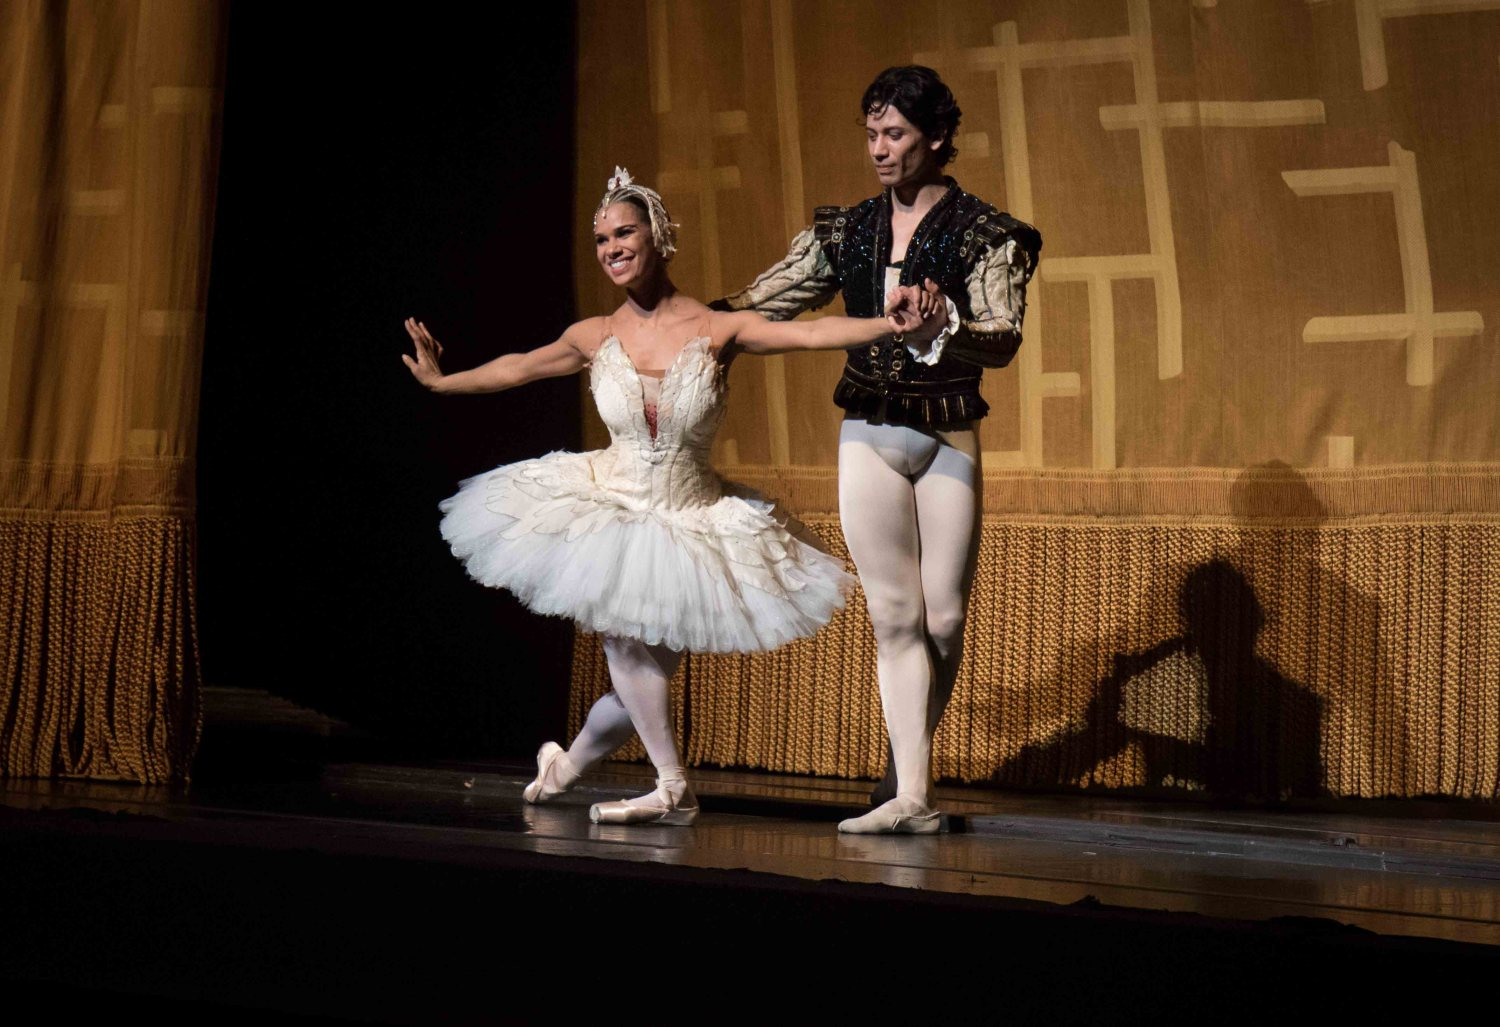 Misty Copeland fouette turns